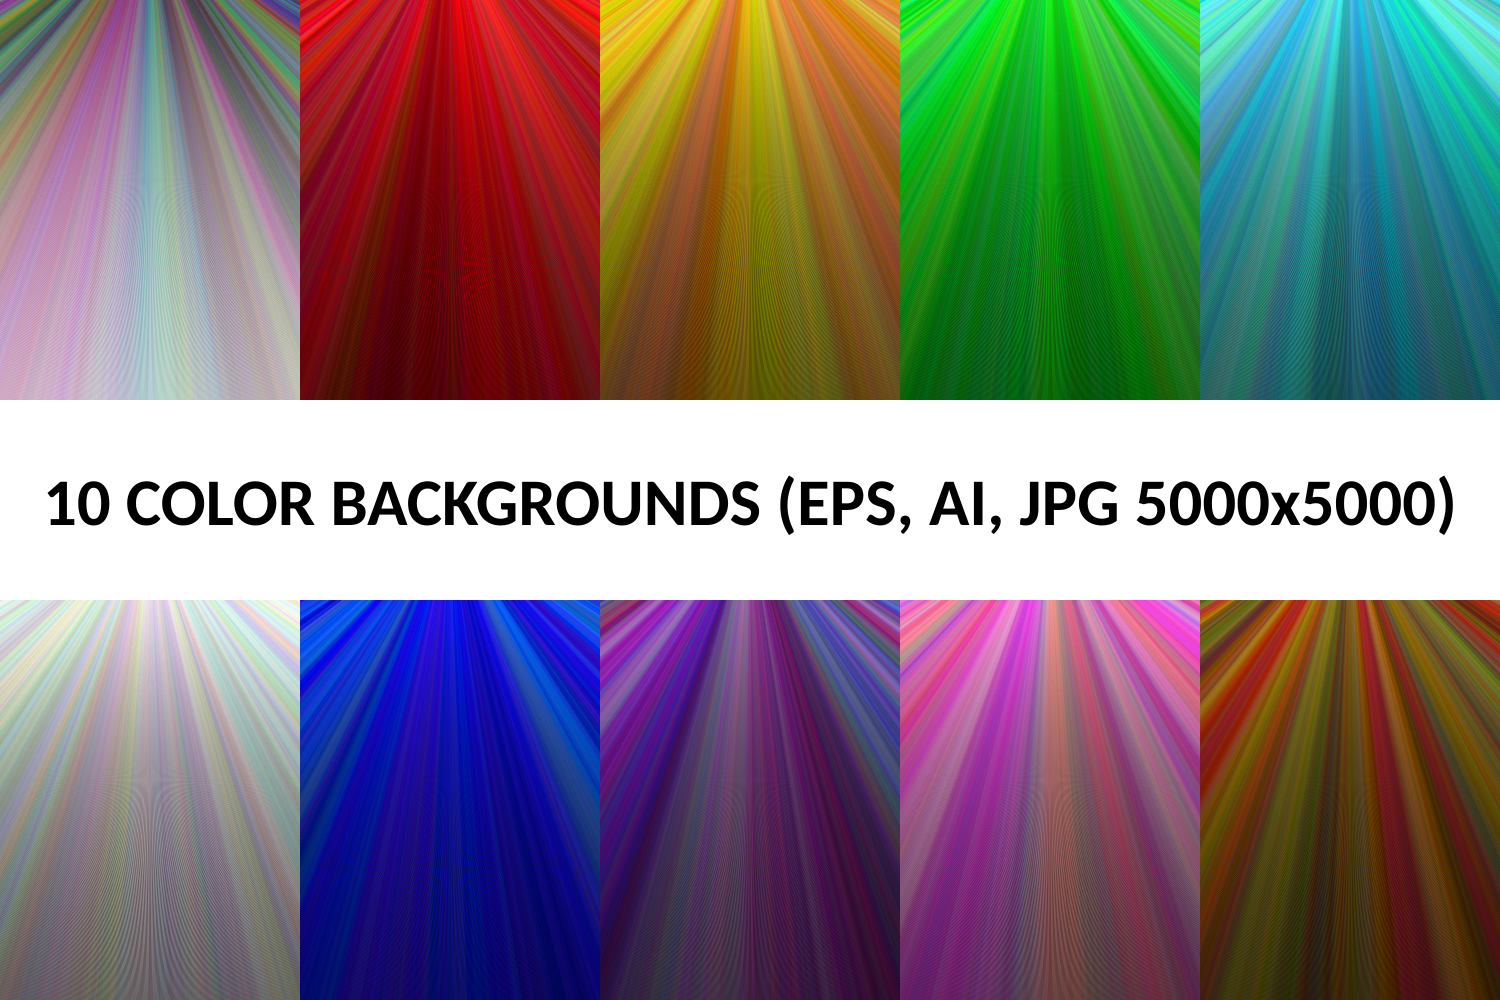 10 Color Backgrounds (AI, EPS, JPG 5000x5000) example image 1